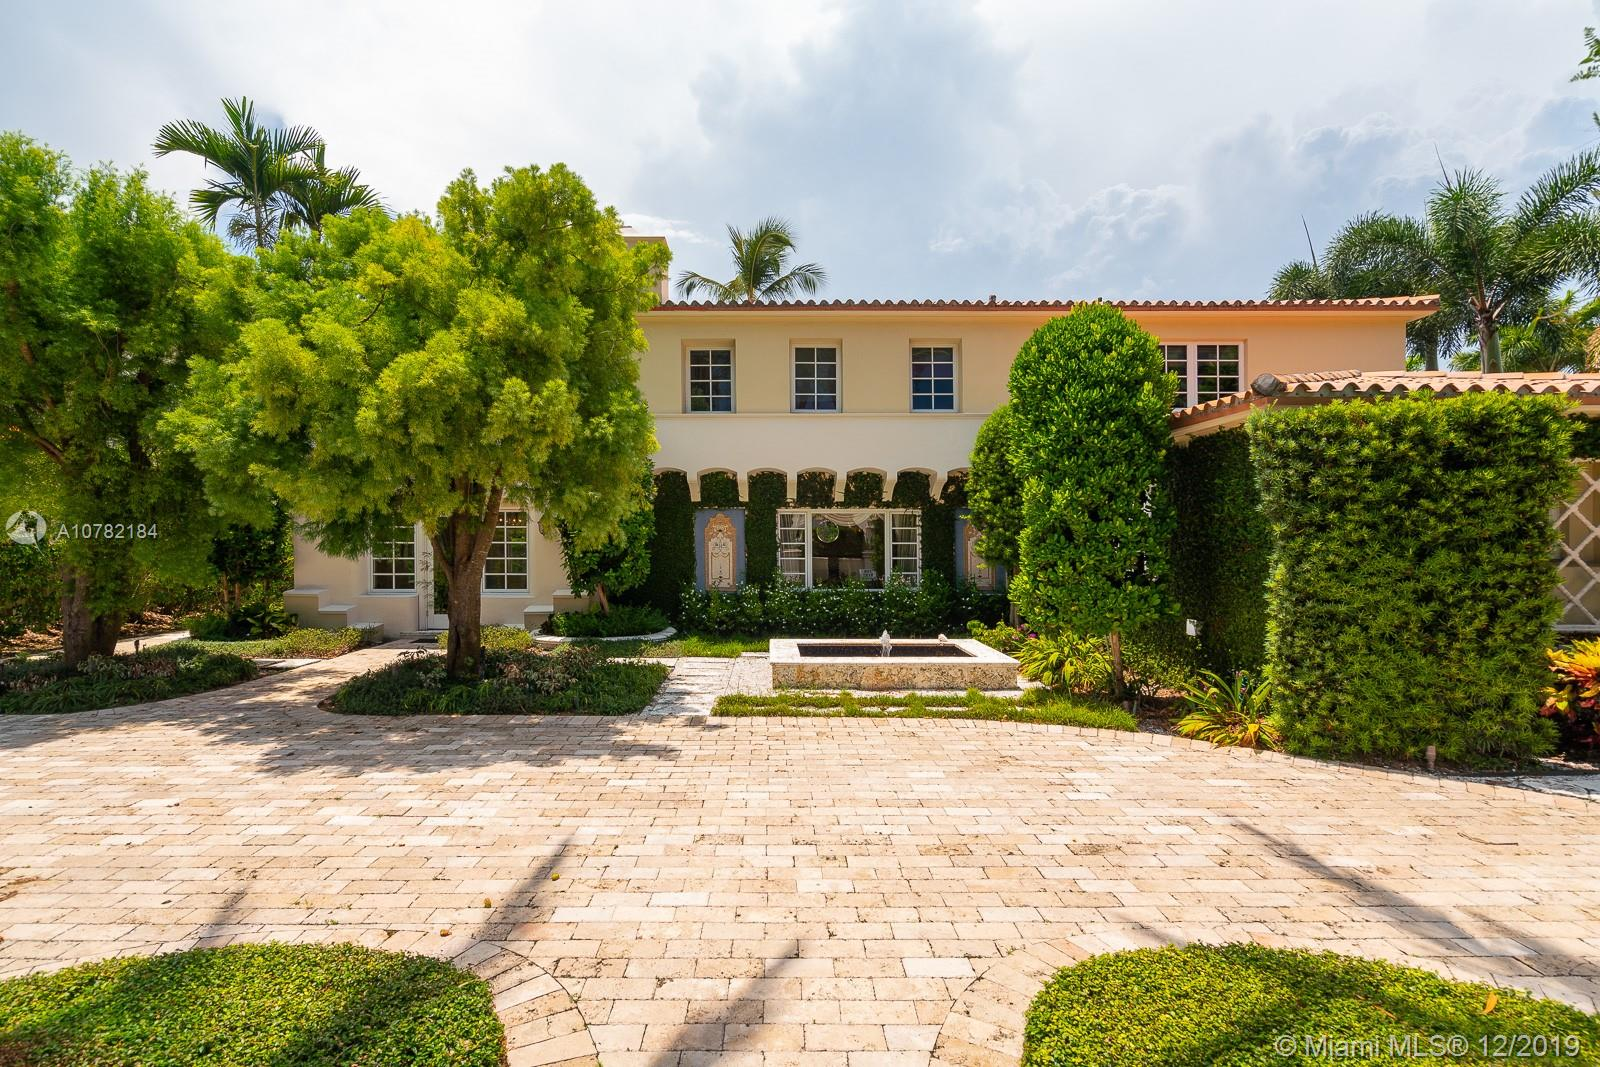 3190  Pine Tree Dr  For Sale A10782184, FL